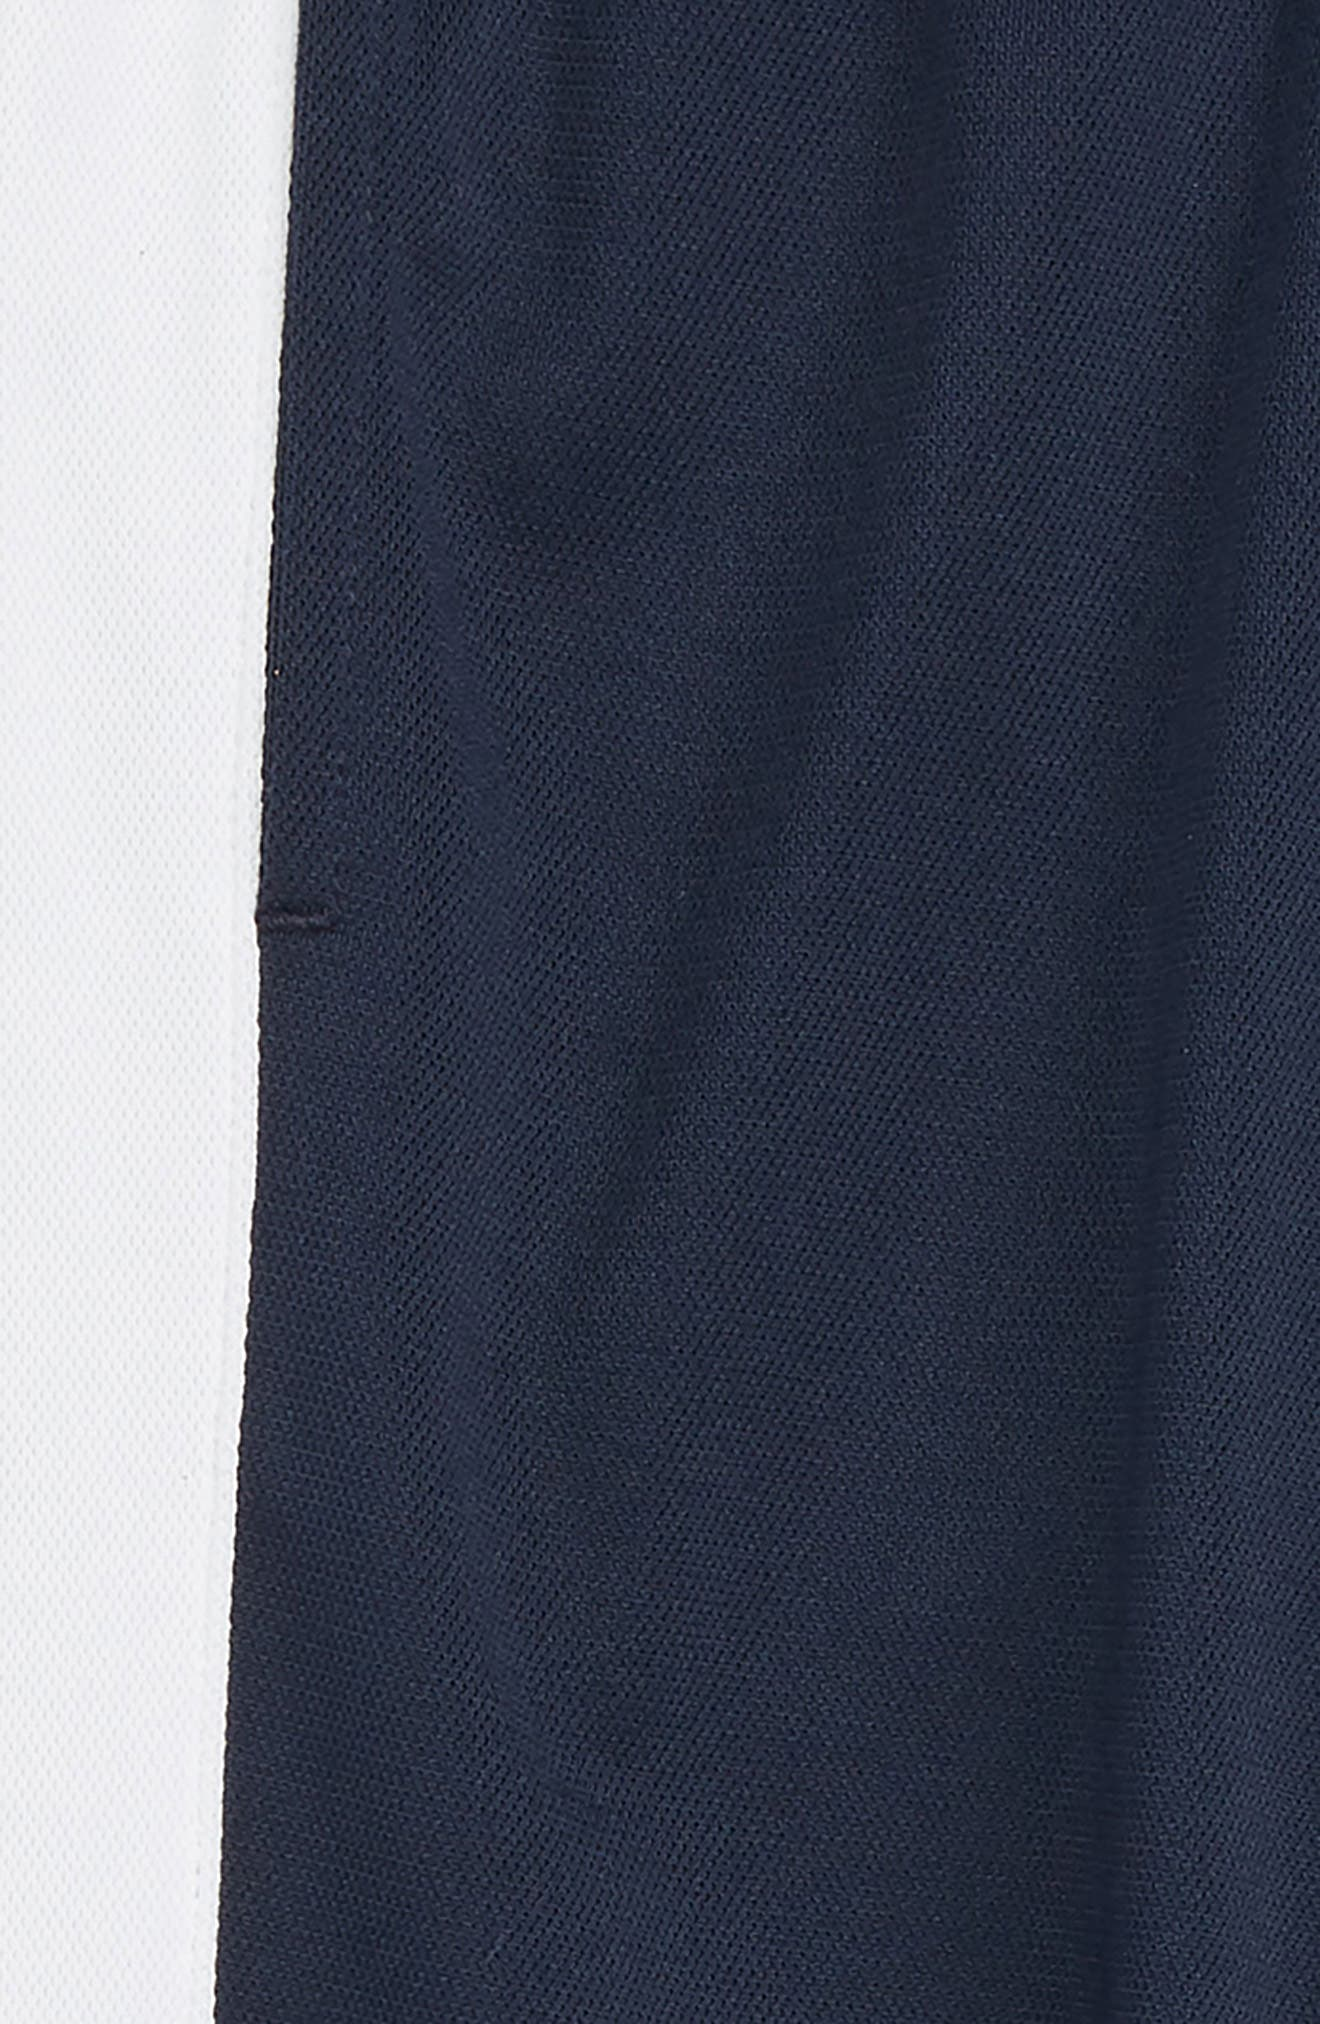 Performance Knit Track Pants,                             Alternate thumbnail 2, color,                             OBSIDIAN/ WHITE